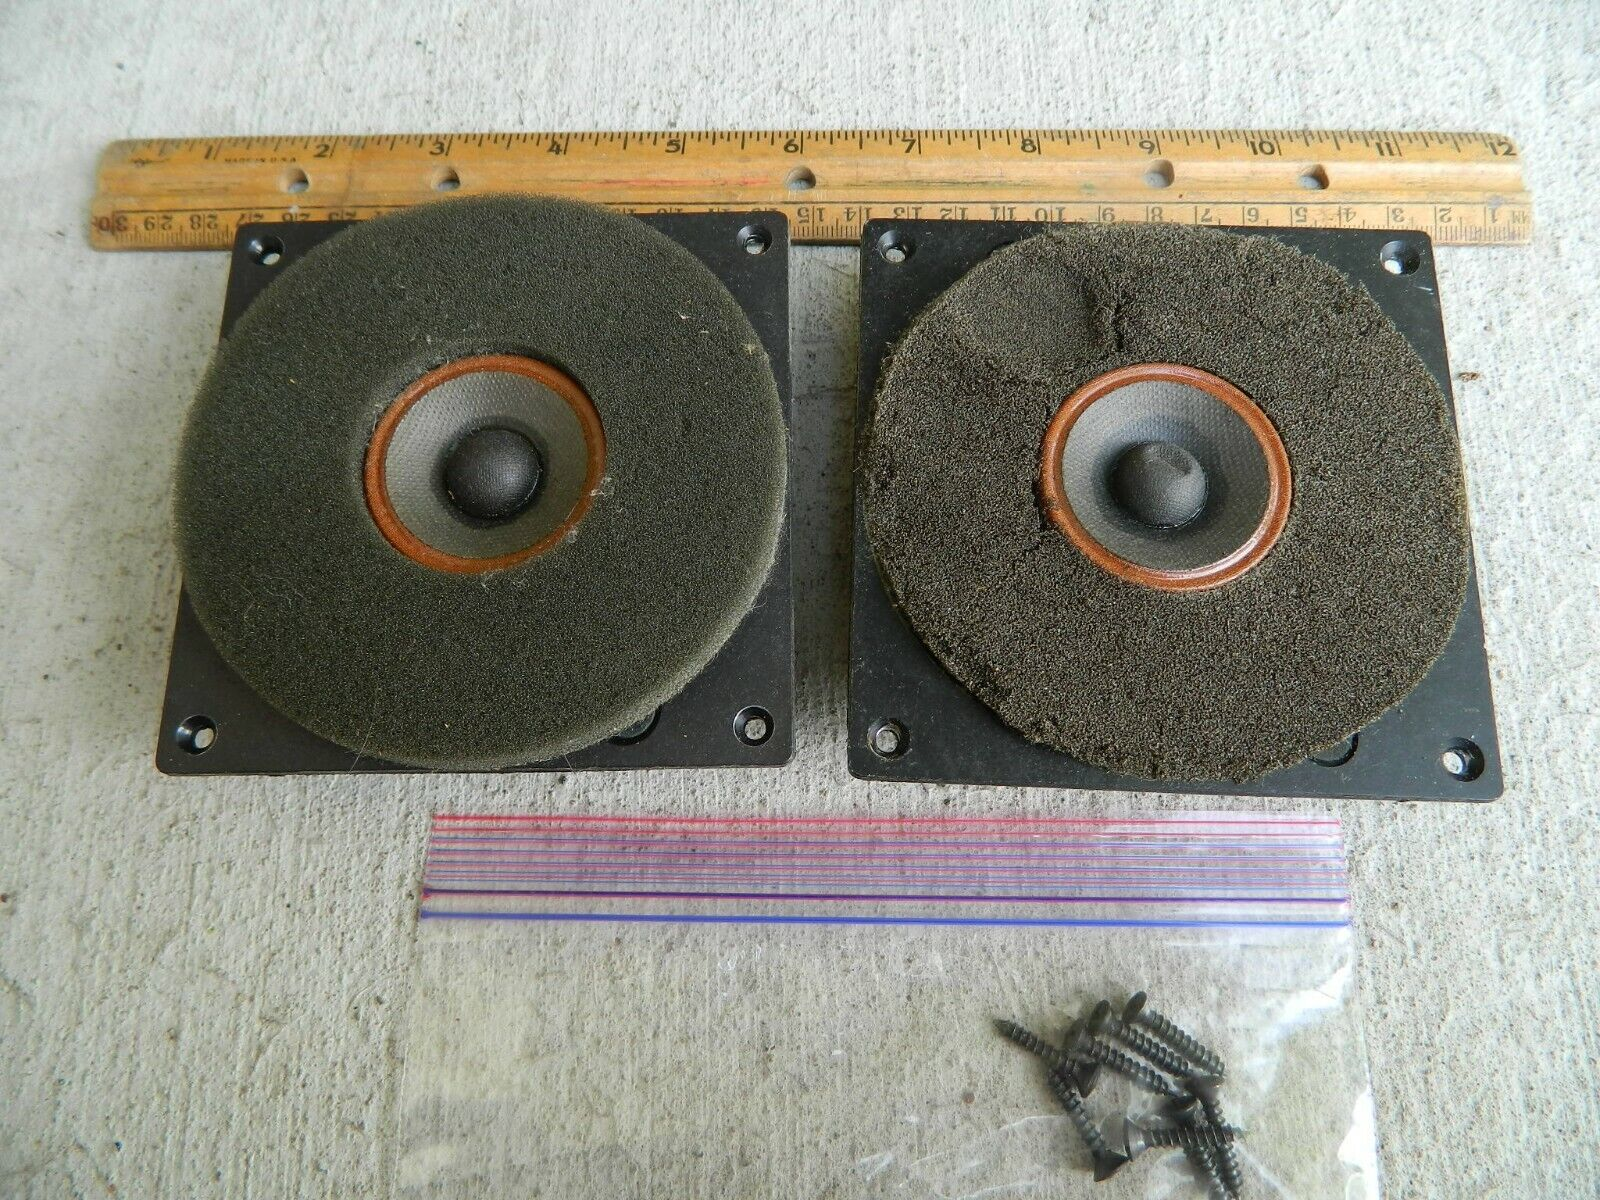 s l1600 - JBL L100 Century 2 Speakers 1 PAIR High Frequency Tweeters LE25 8 OHMS USA